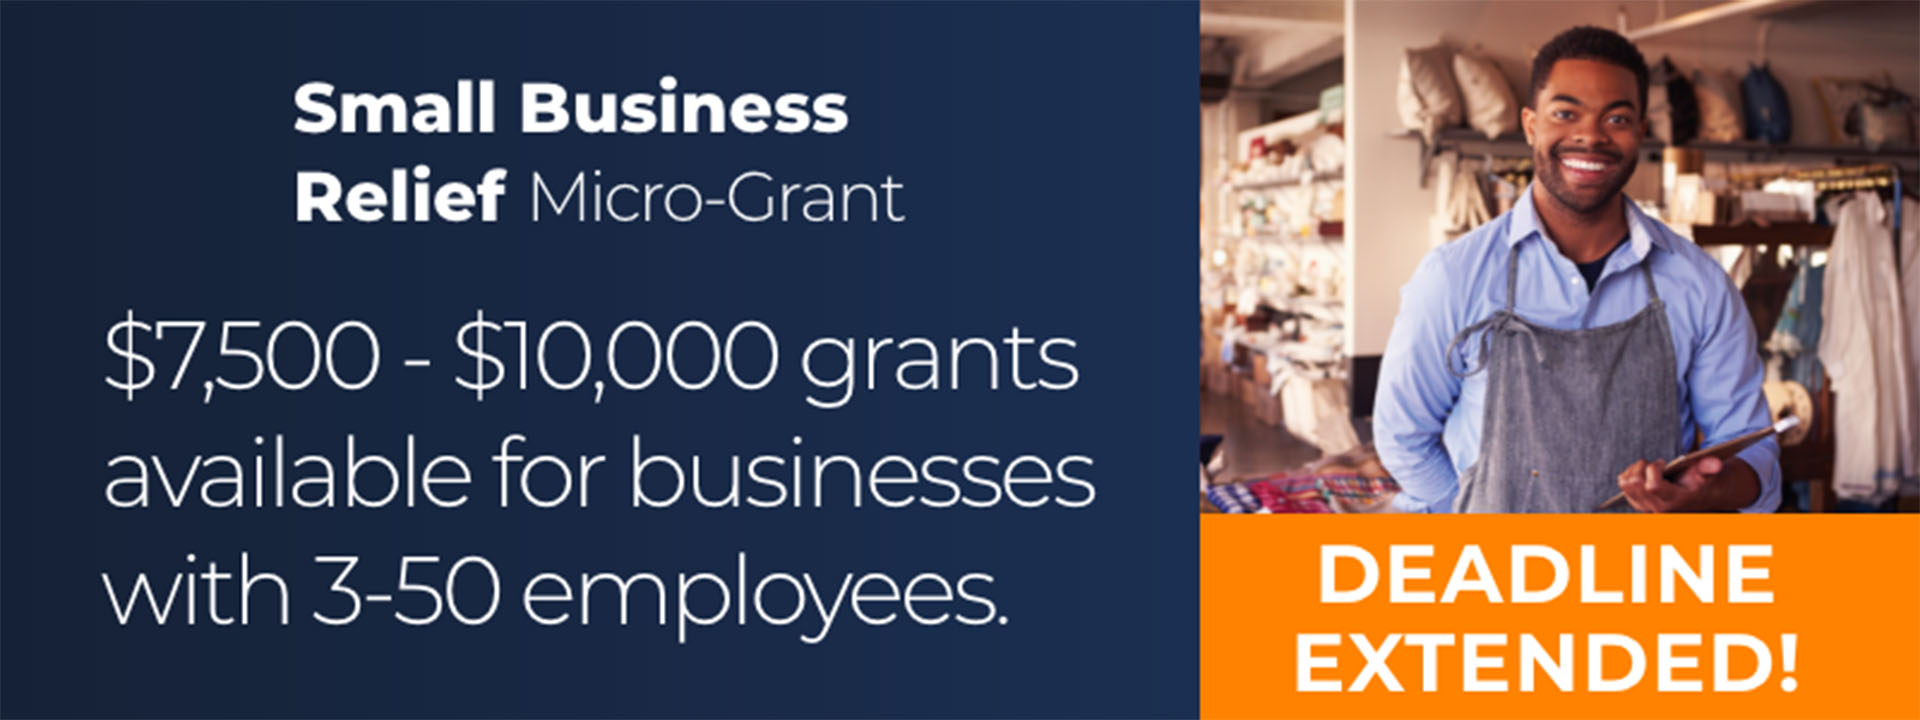 Grant for small businesses available